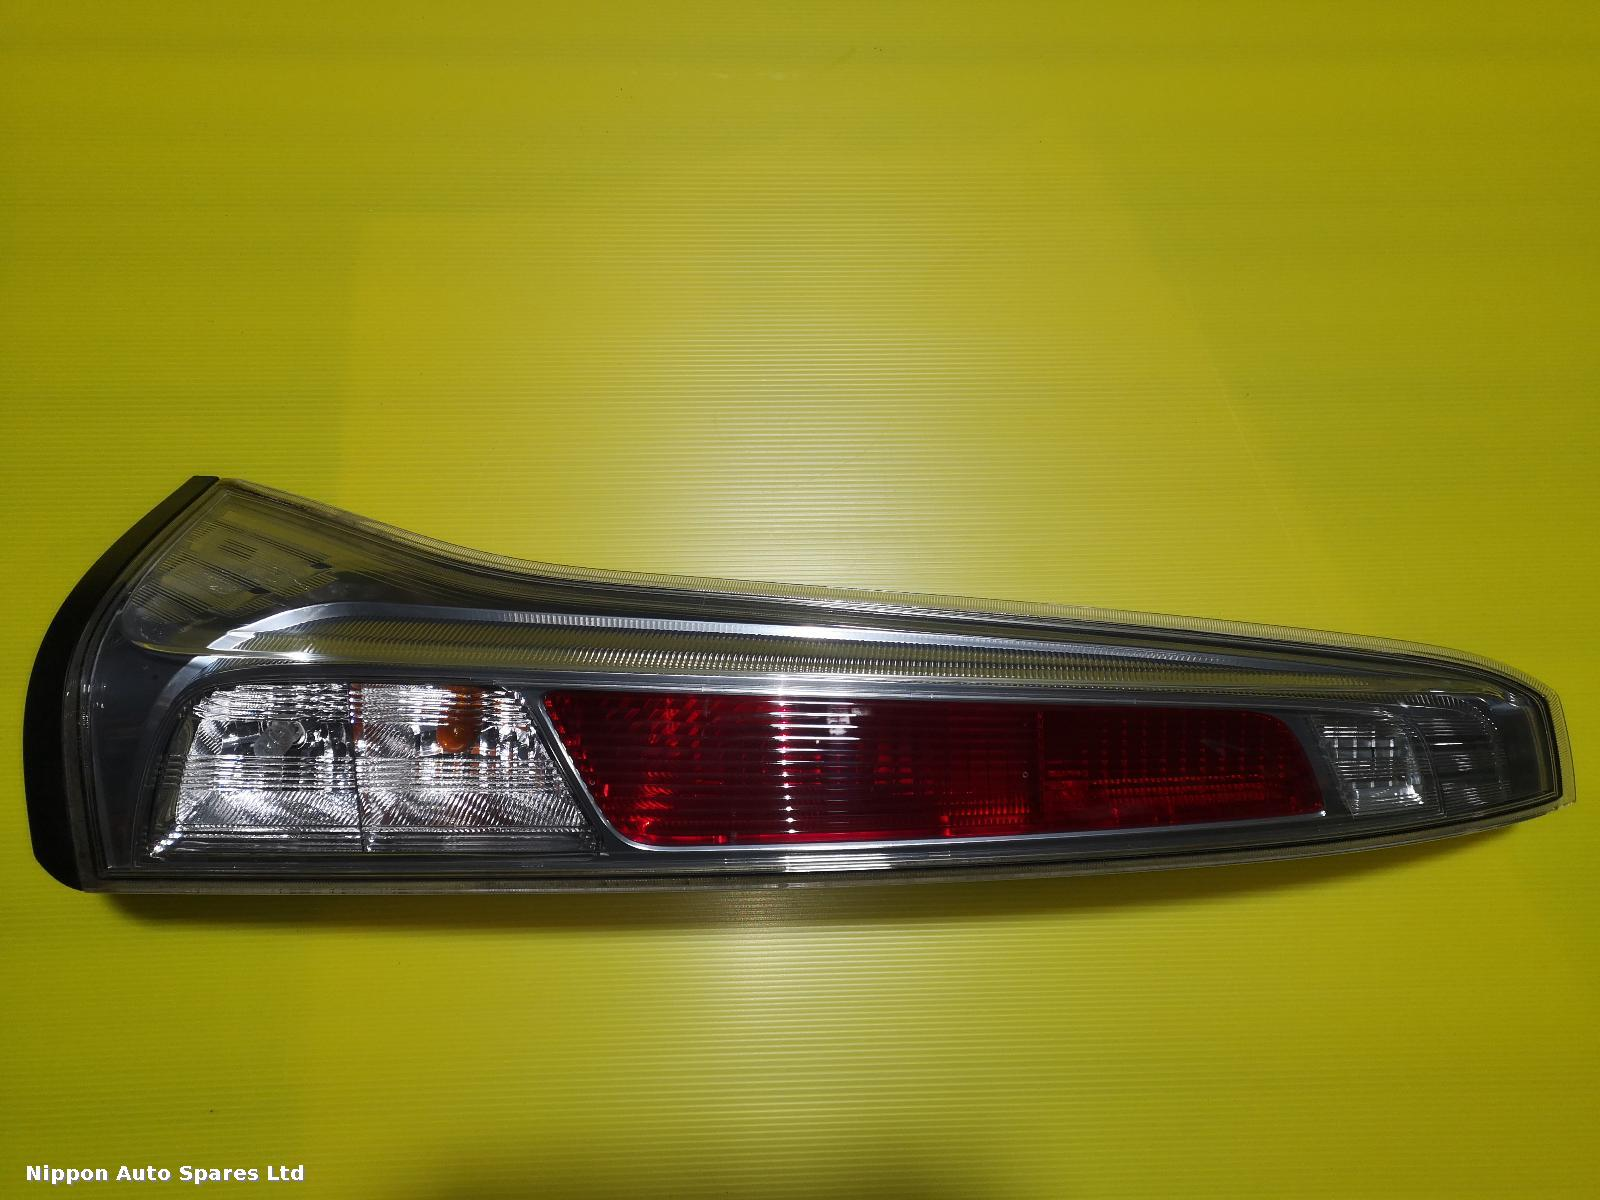 Nissan SERENA L Taillight NON LED RED: 56530